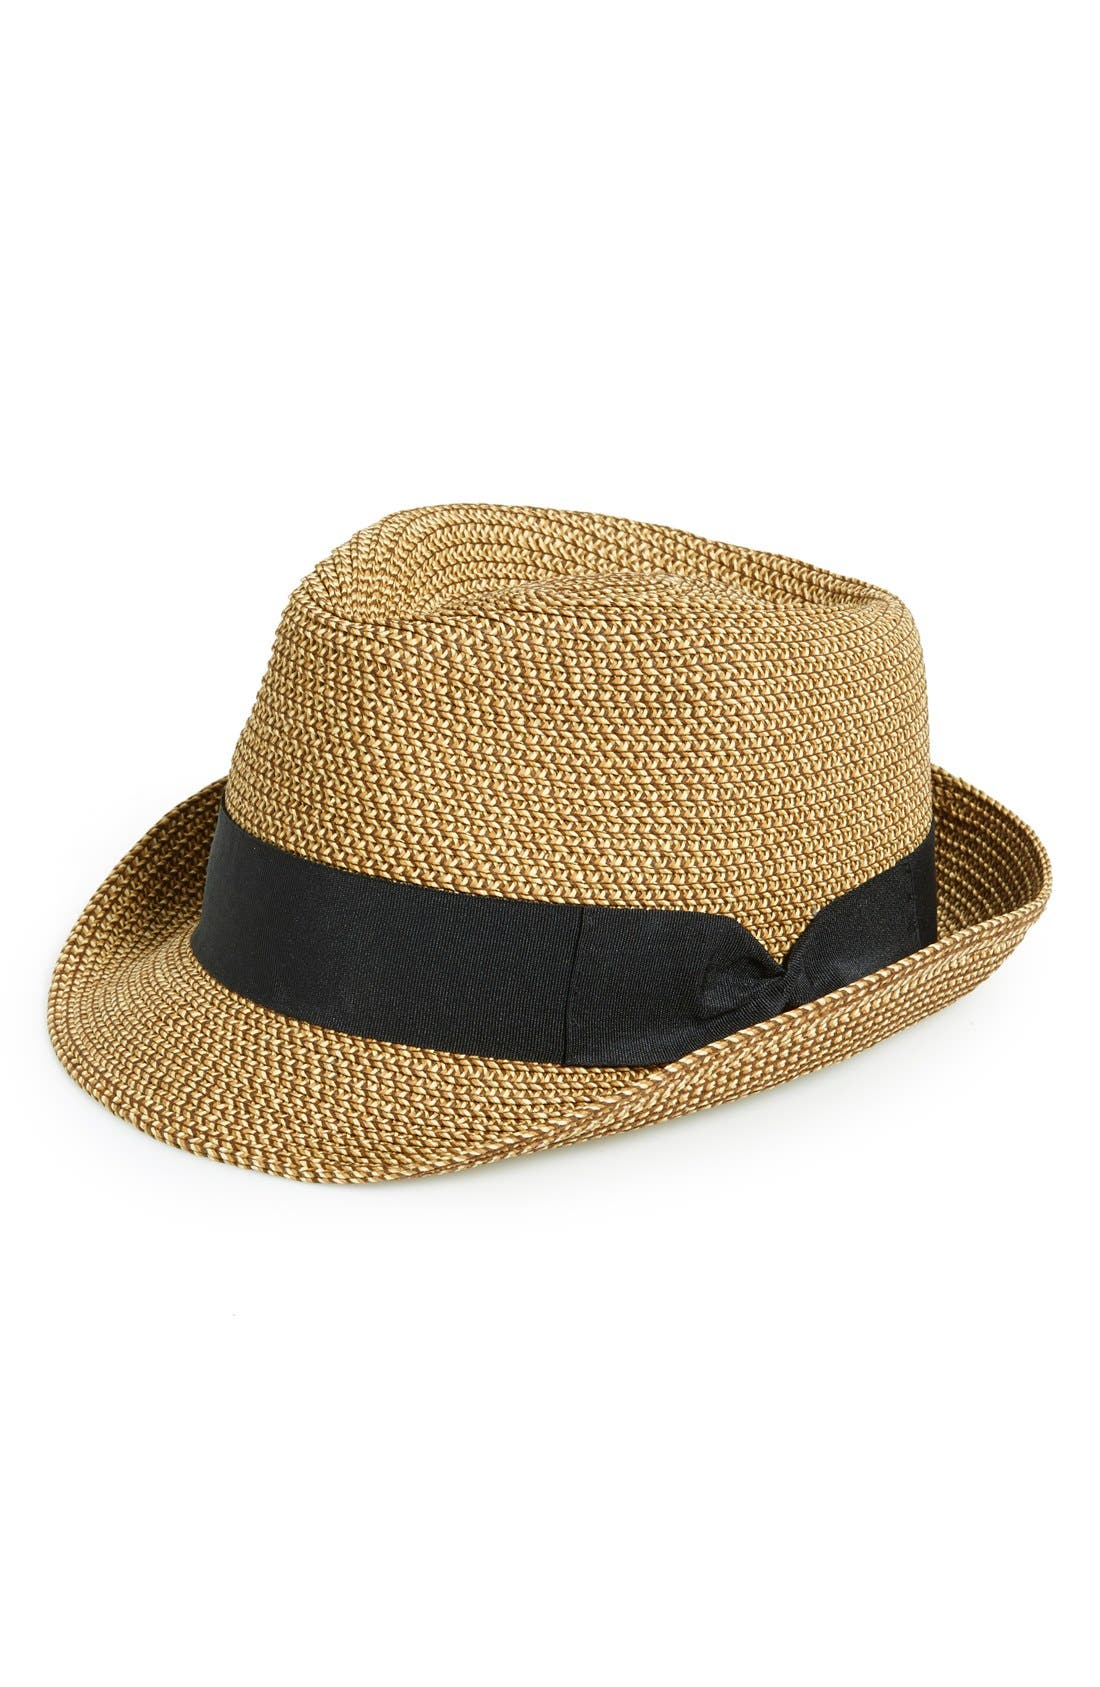 Straw Fedora,                             Main thumbnail 1, color,                             Natural/ Black